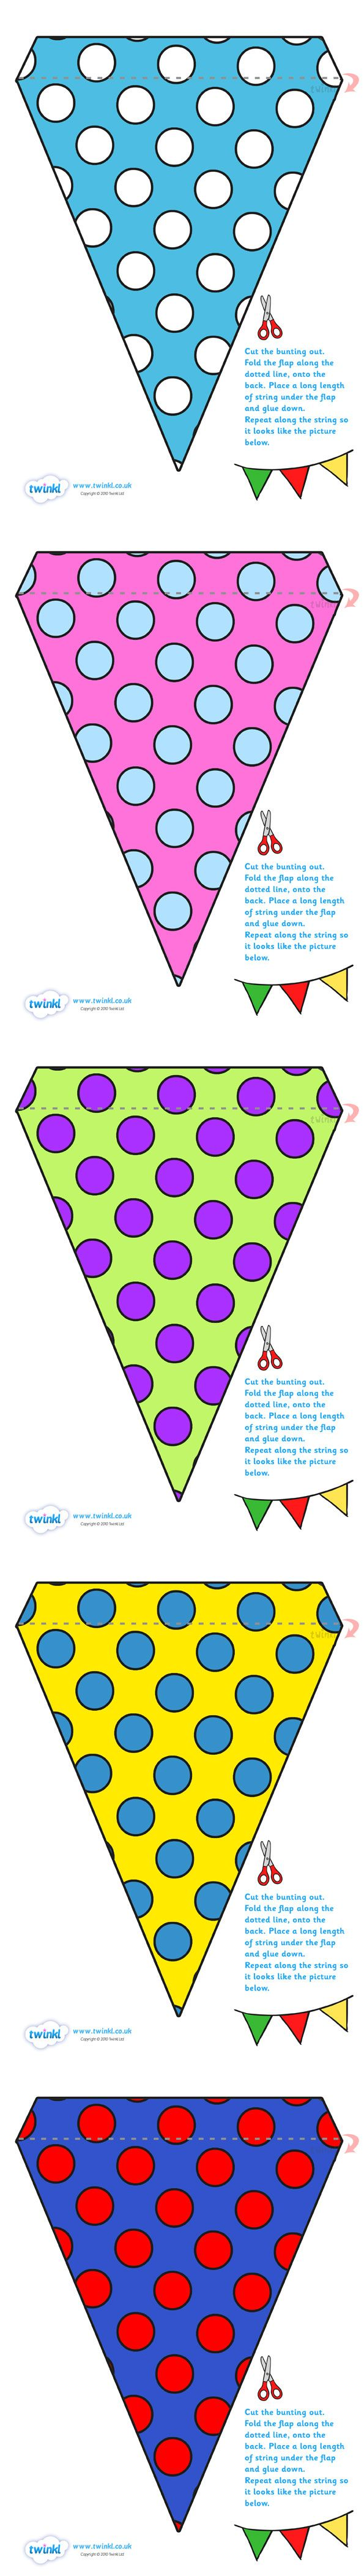 Twinkl Resources >> Display Bunting Spots  >> Thousands of printable primary teaching resources for EYFS, KS1, KS2 and beyond! bunting, display bunting, classroom bunting, decorative bunting, royal wedding, classroom display,